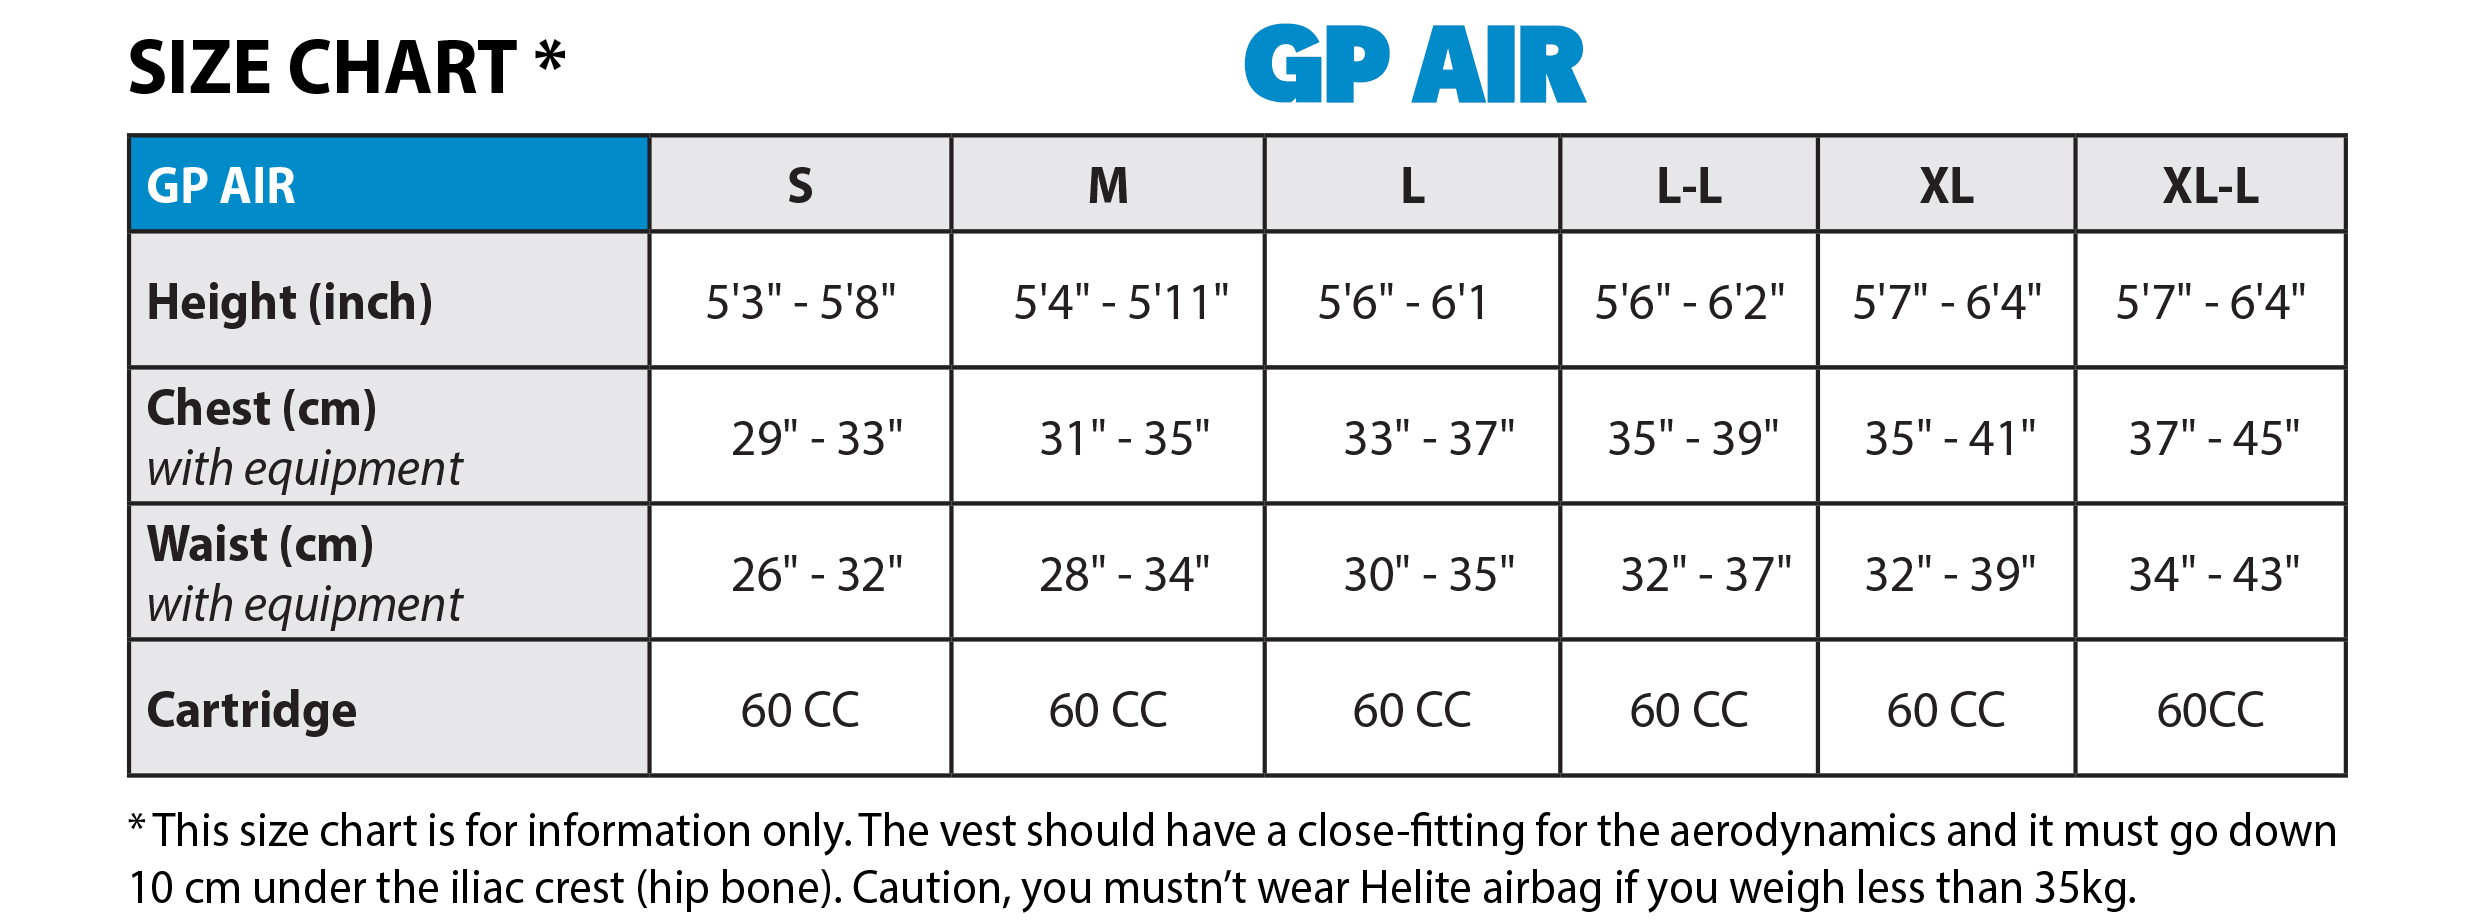 newsletter-gp-air-2018-en-size-chart.jpg